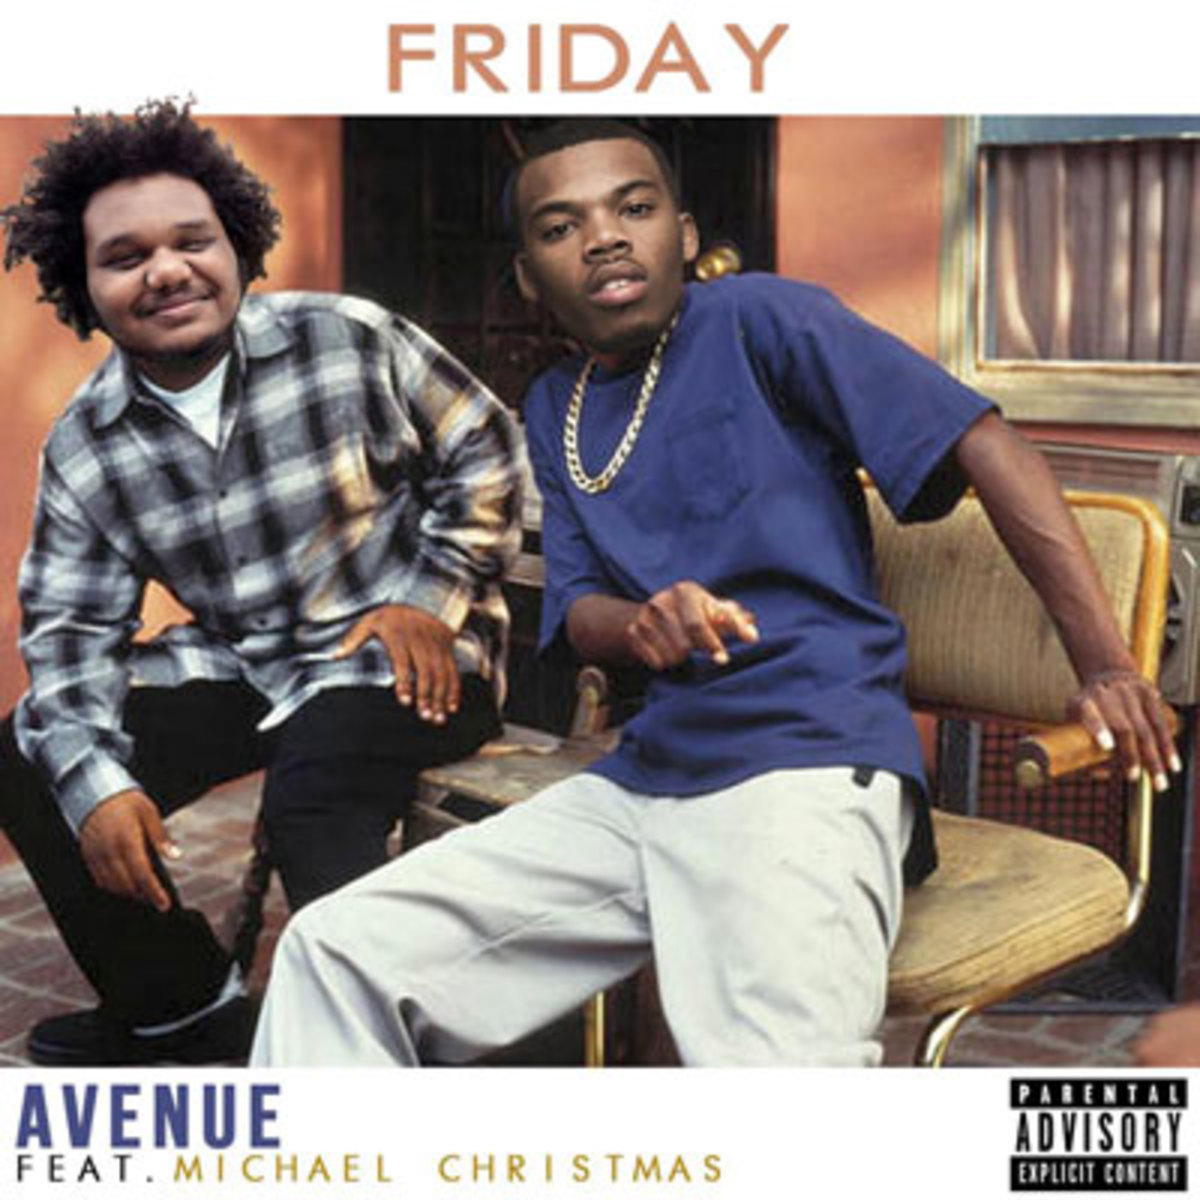 avenue-friday.jpg